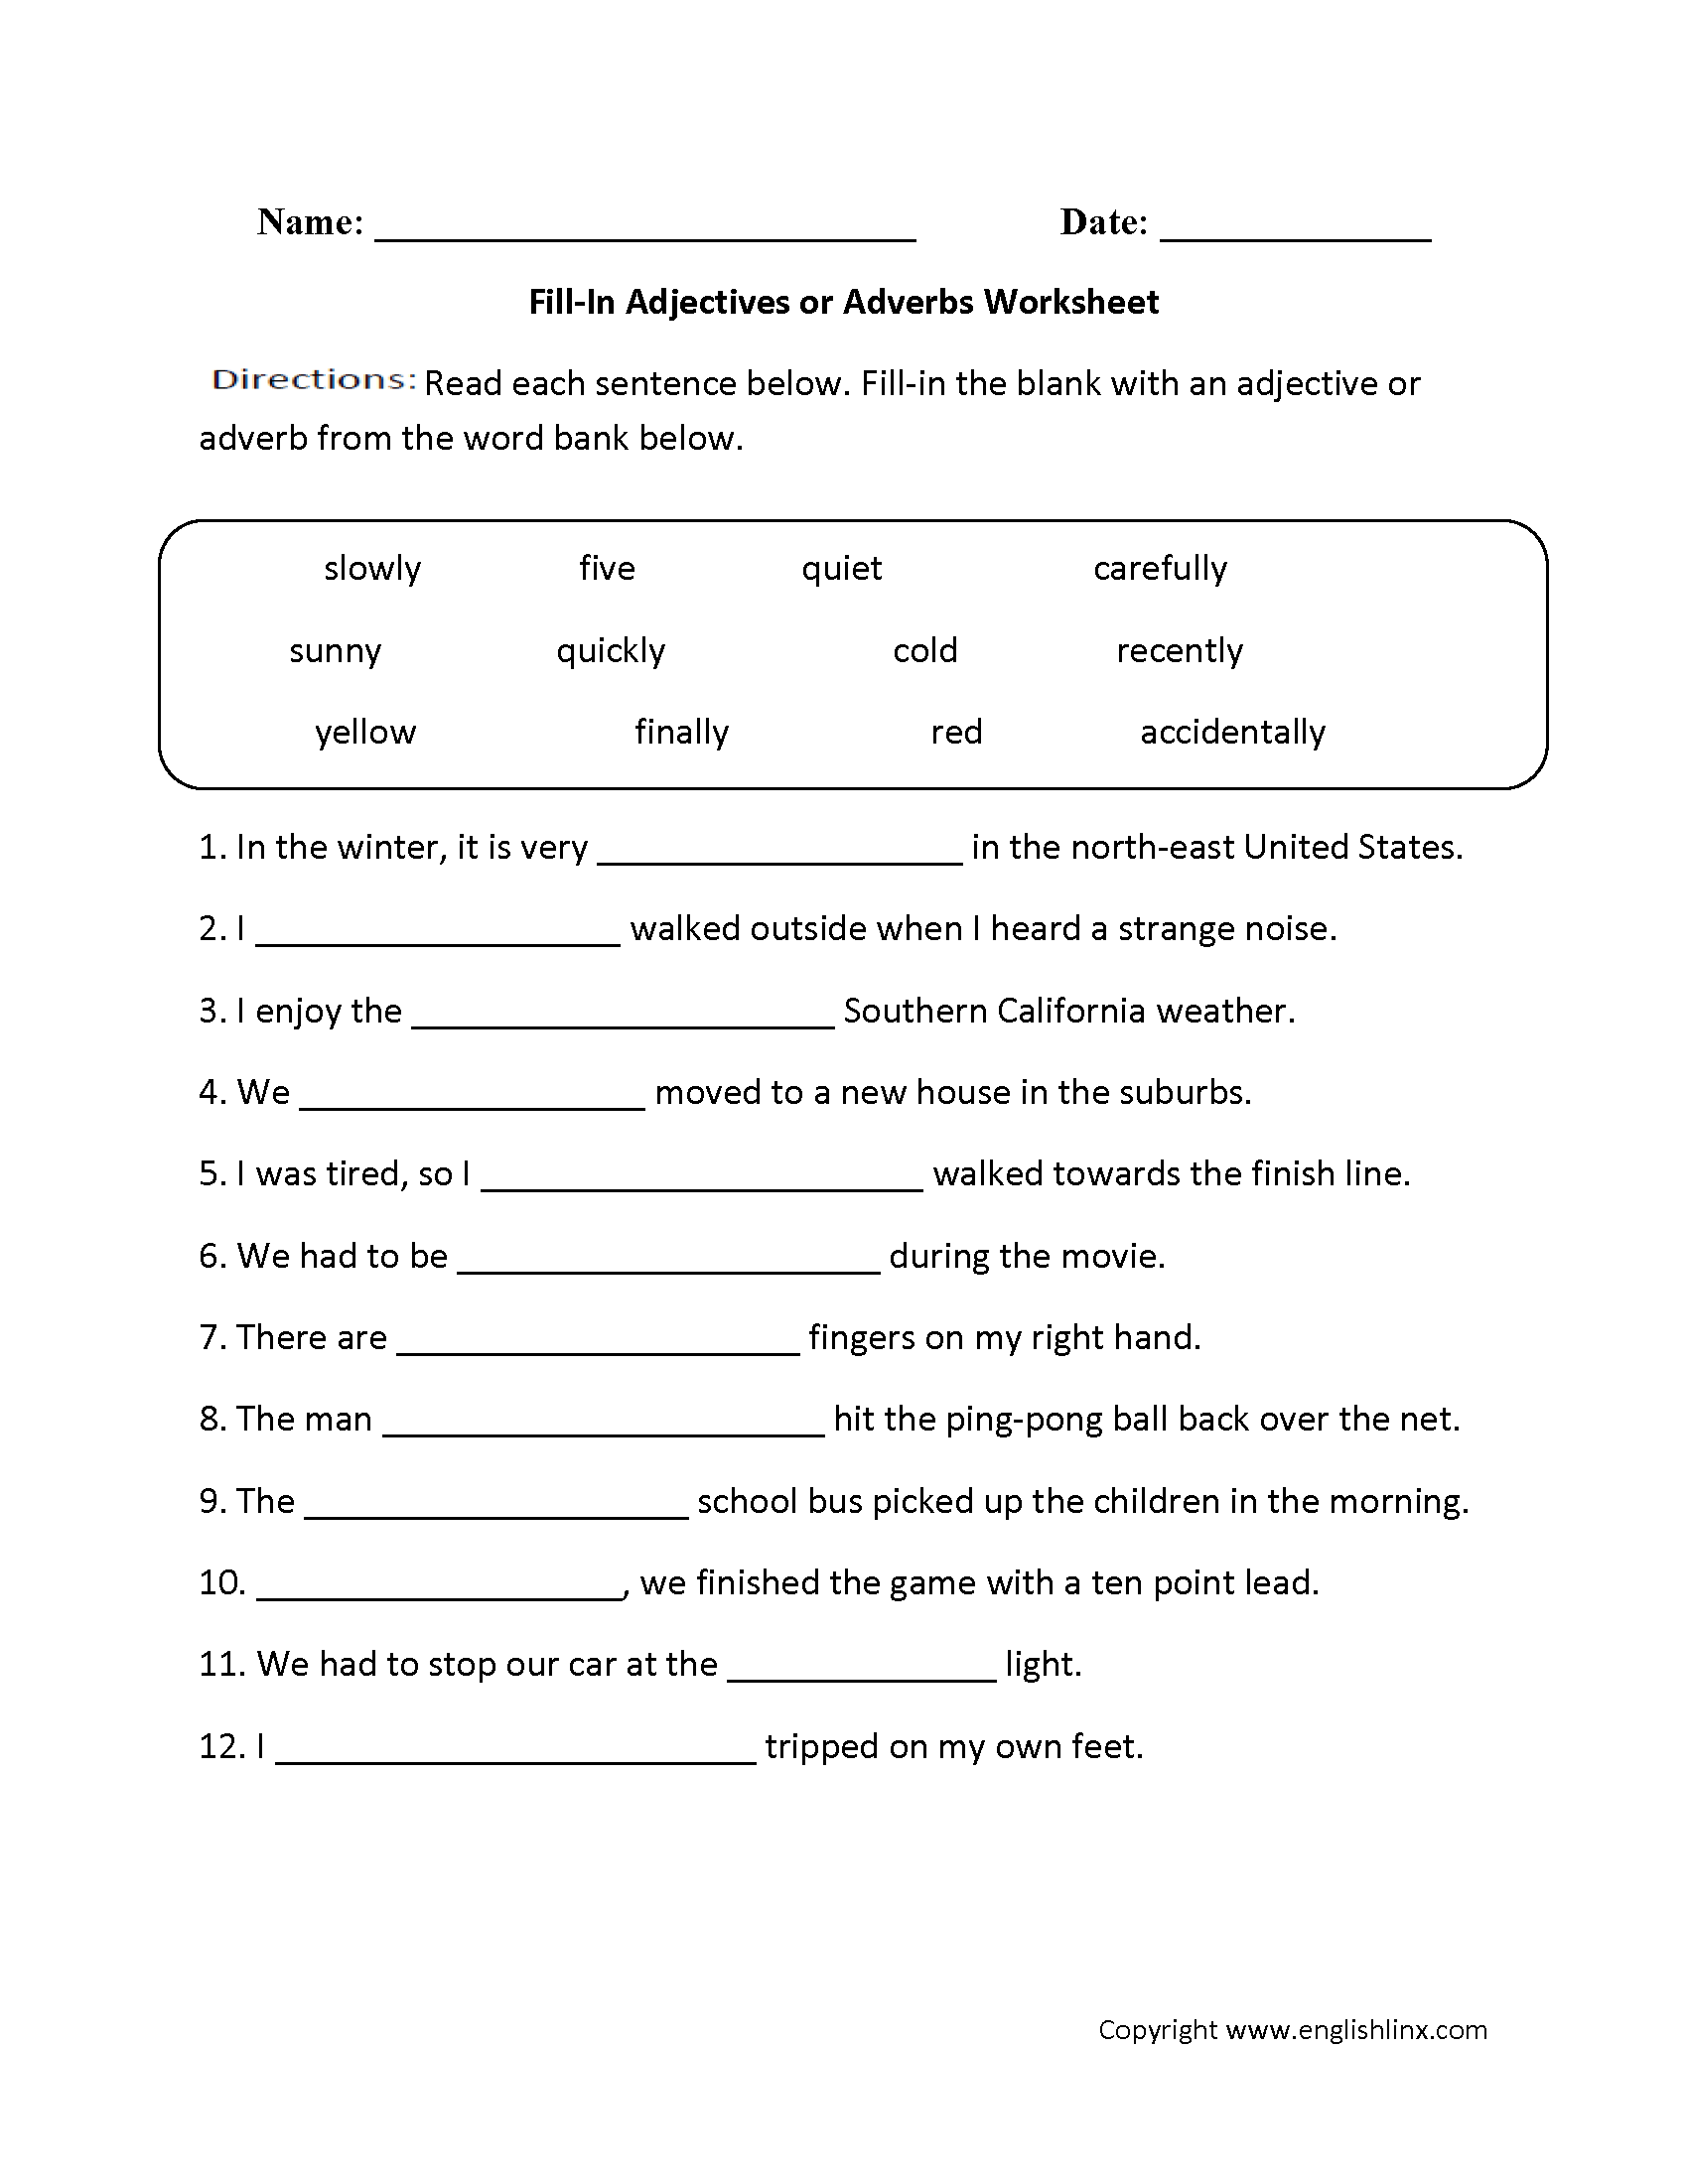 Printables Adjectives Worksheets For Grade 3 Pdf adjectives worksheets or adverbs worksheet